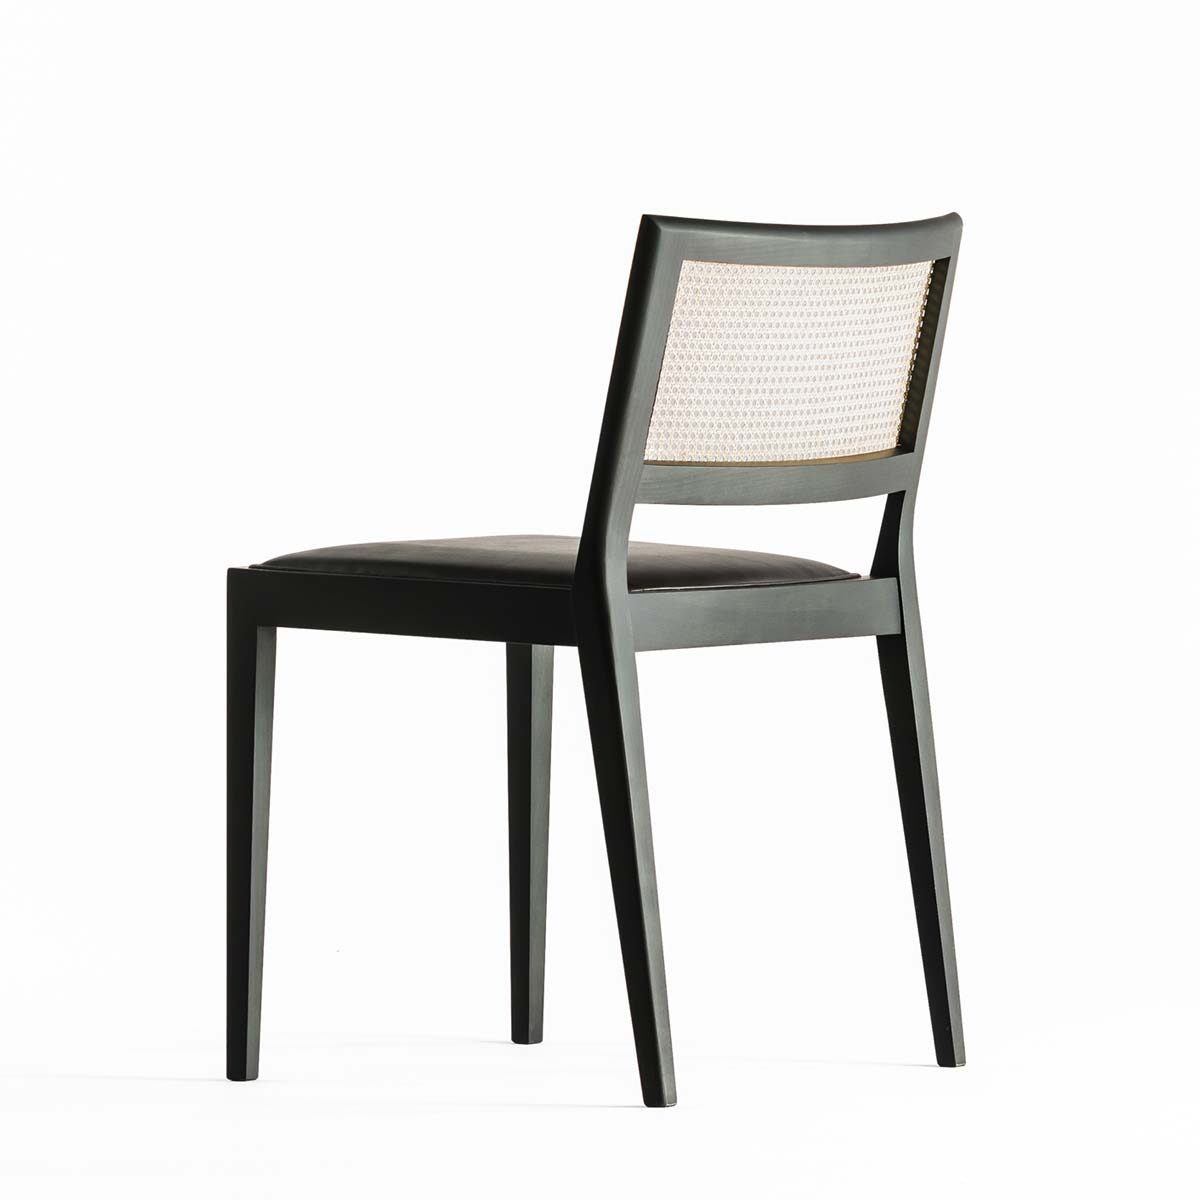 A chair outside the cage by Time & Style